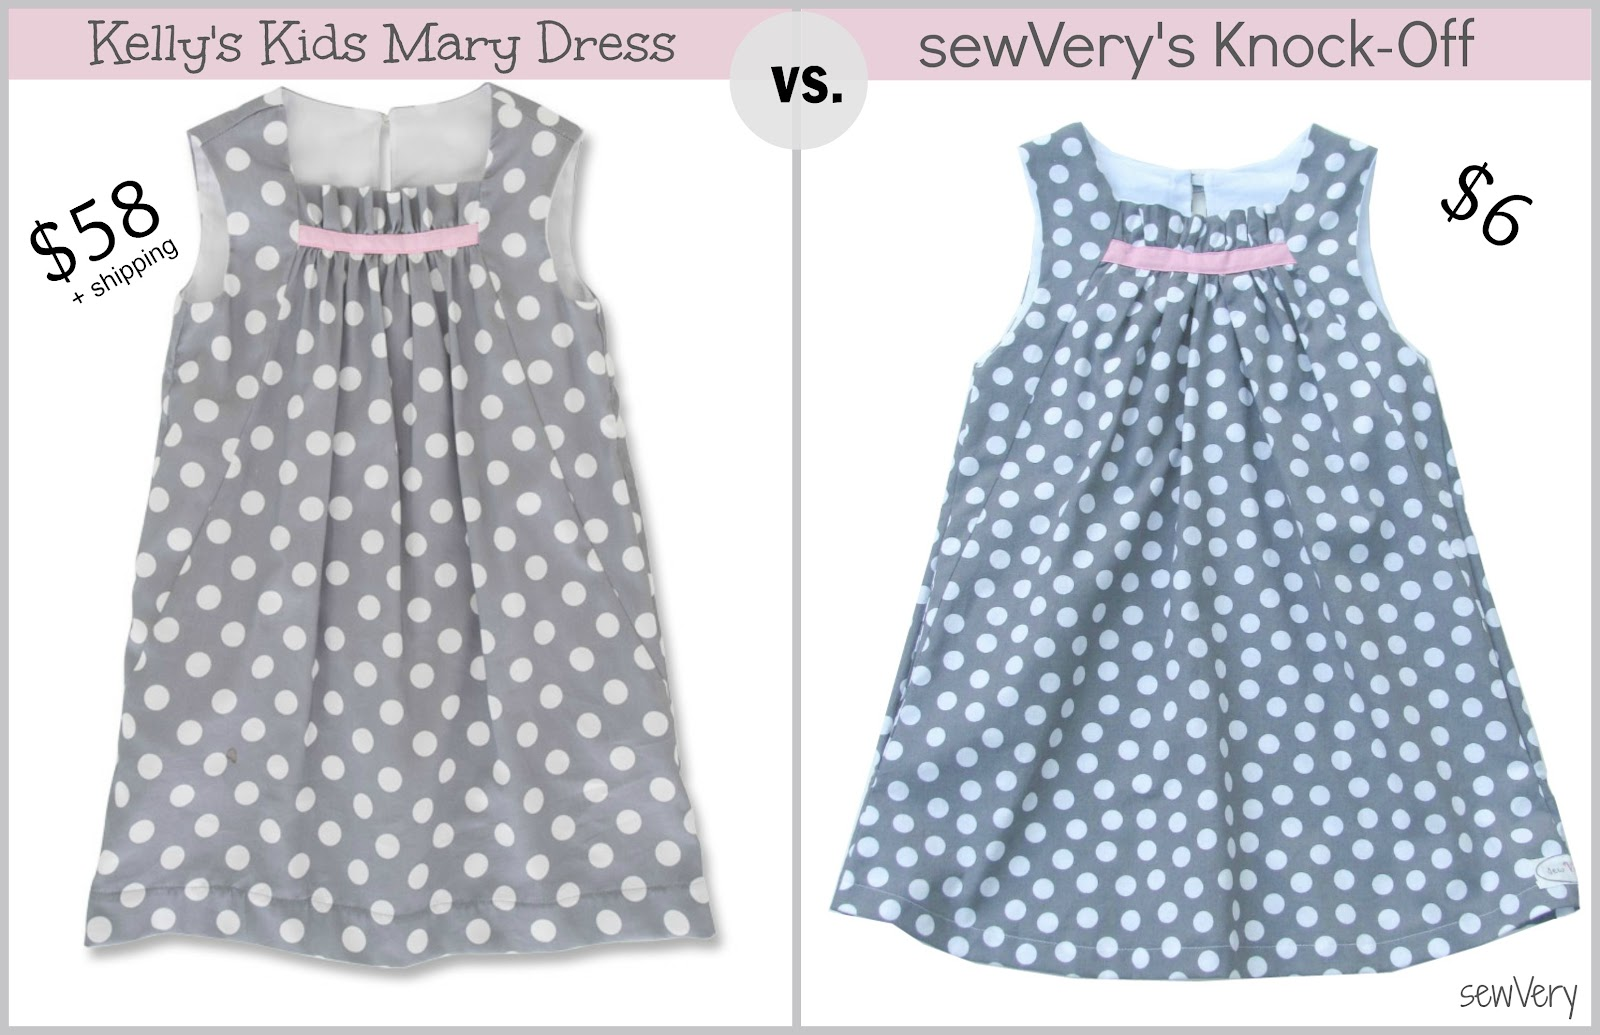 29f430622a098 sewVery: Kelly's Kids Mary Dress: Knock-It-Off Series